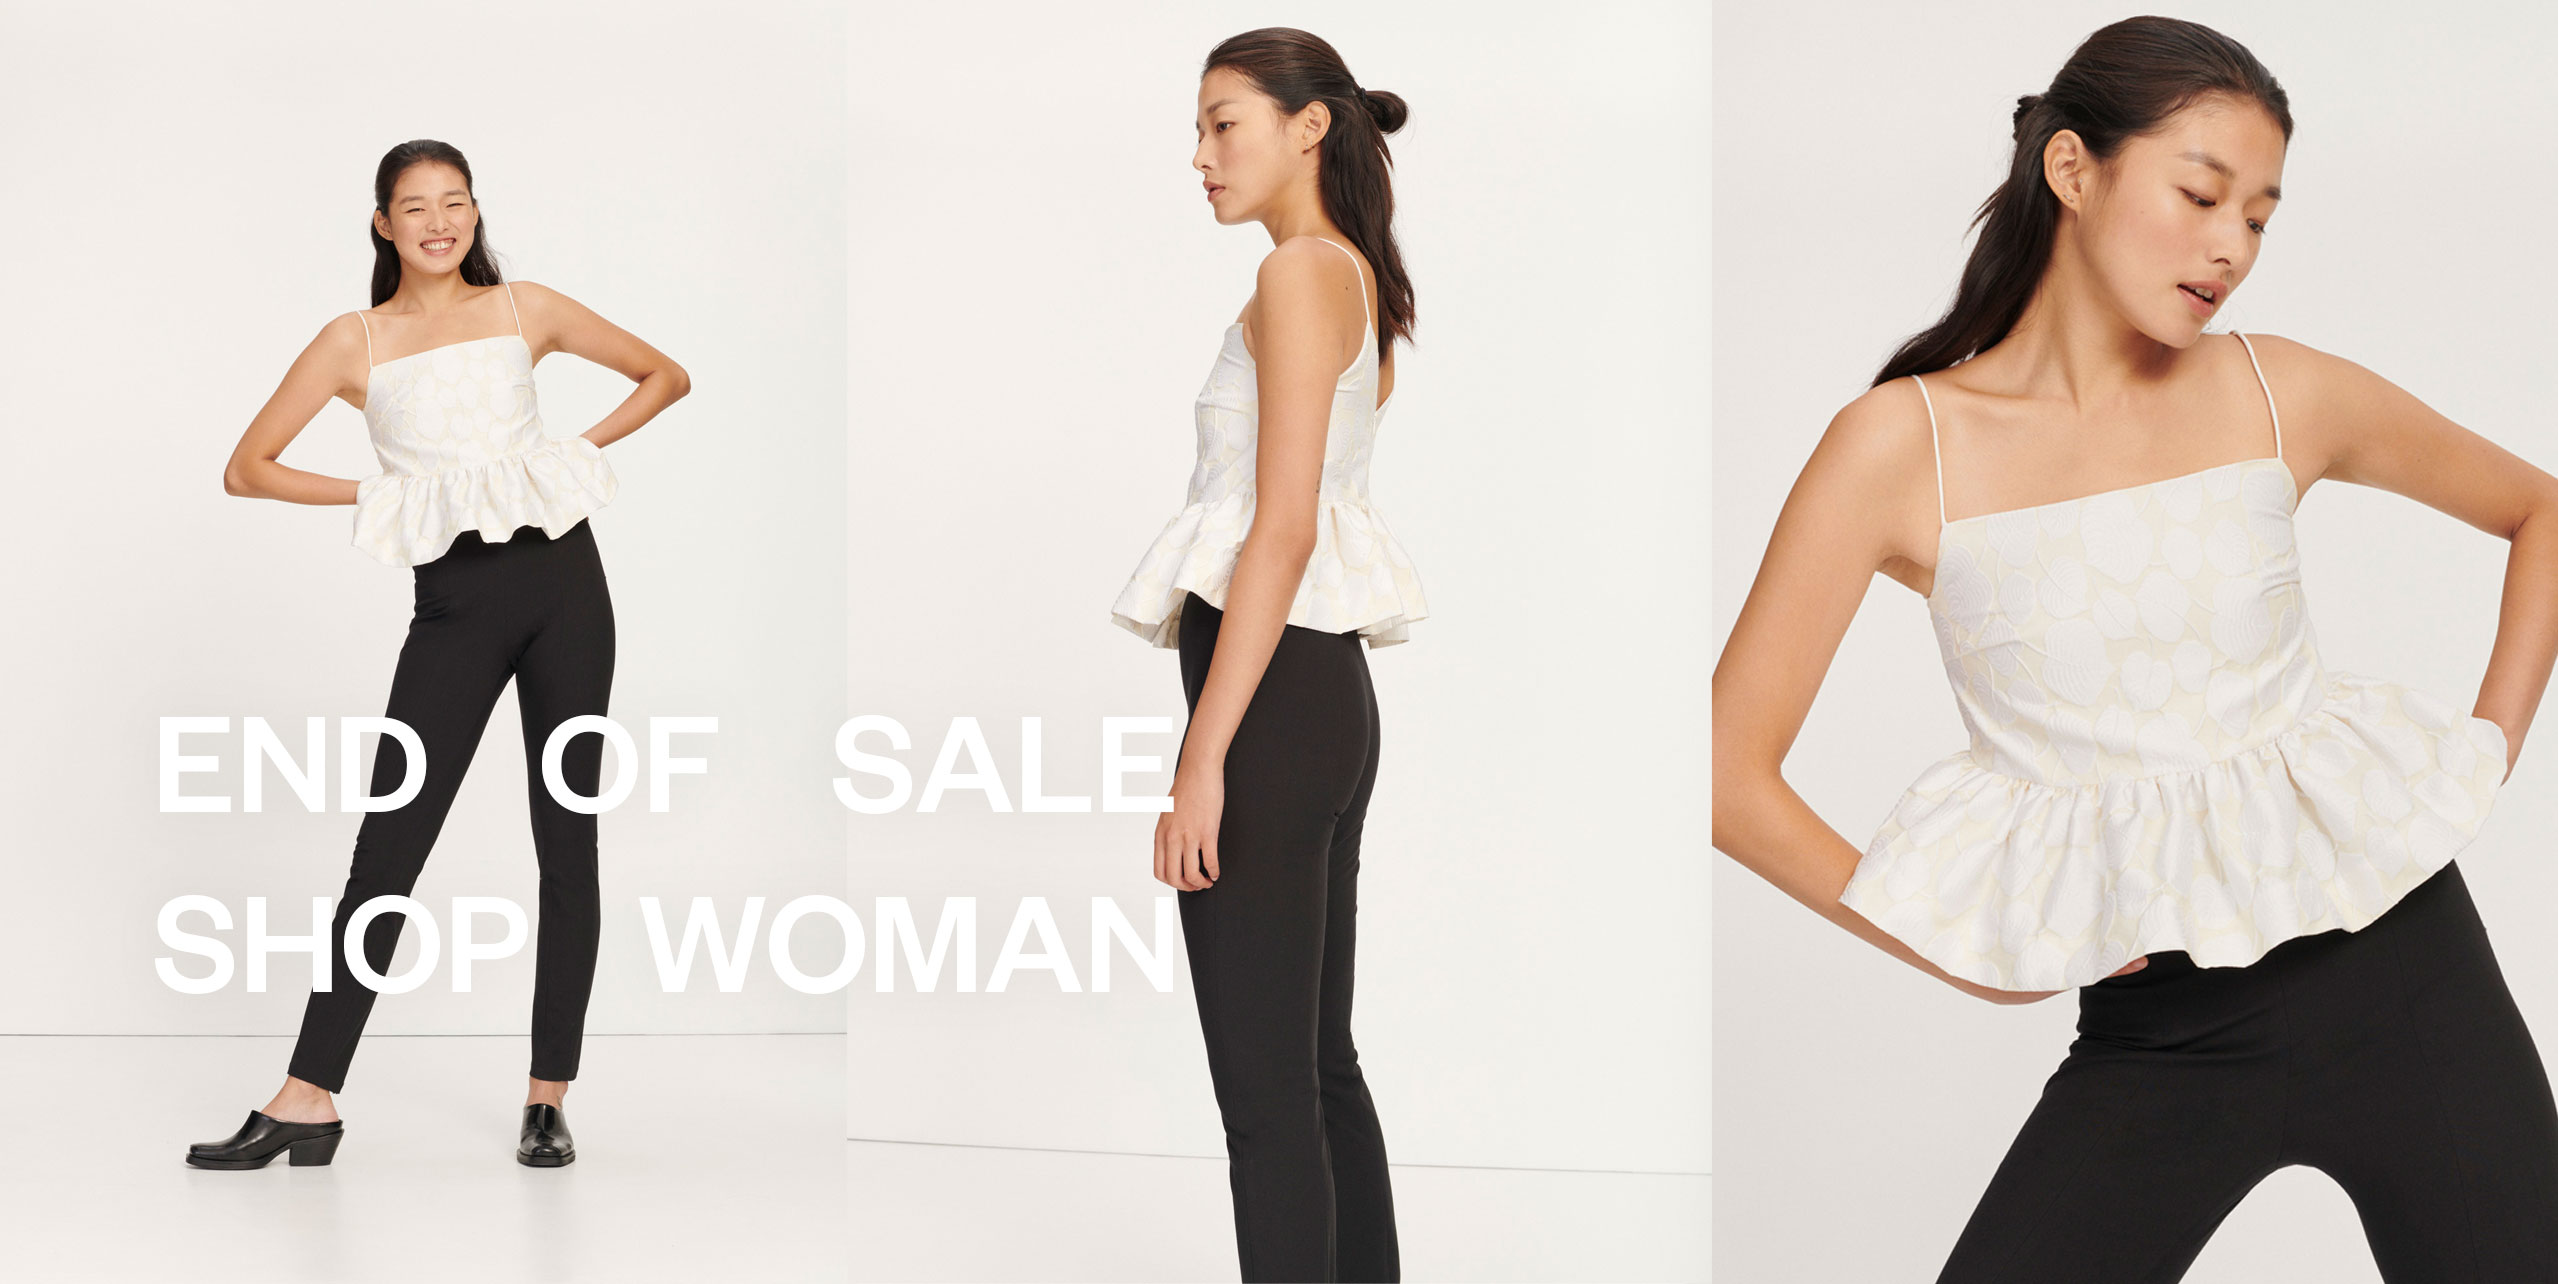 Woman sale ladies fashion